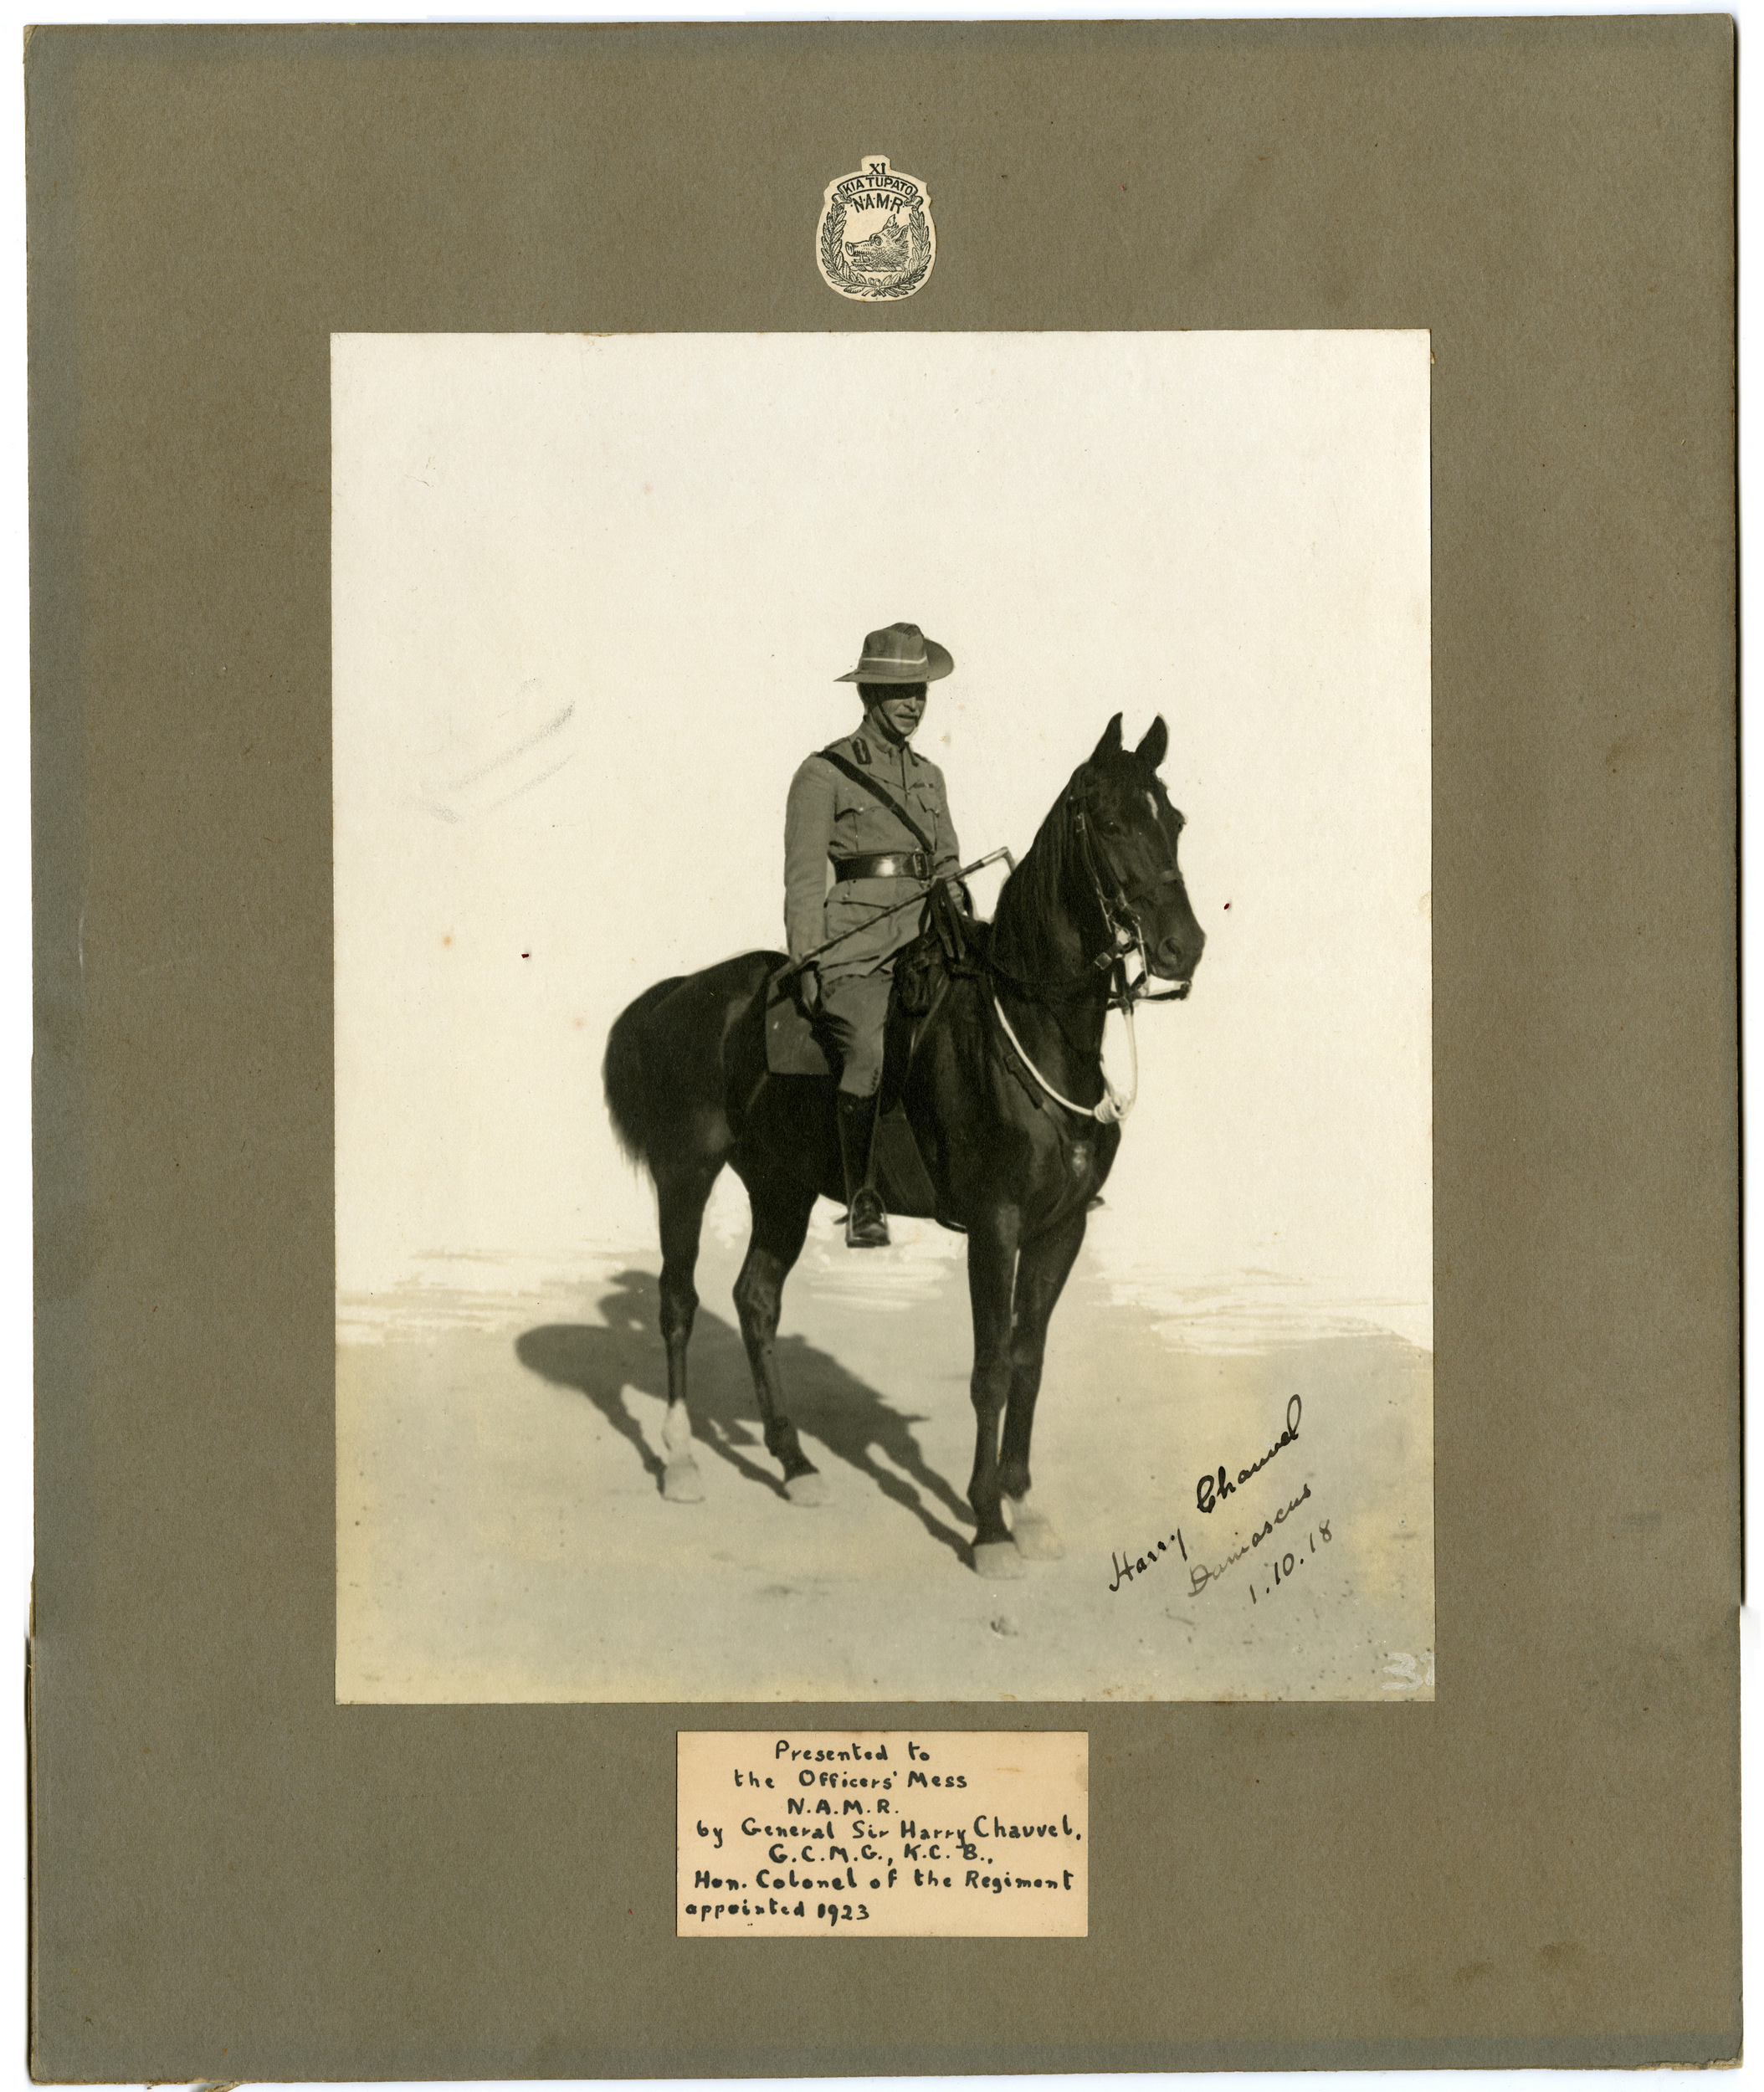 """Caption reads:   """"Presented to the Officers' Mess    N.A.M.R    by General Sir Harry Chauvel    G.C.M.G., K.C.B.,    Hon. Colonel of the Regiment     appointed 1923"""""""